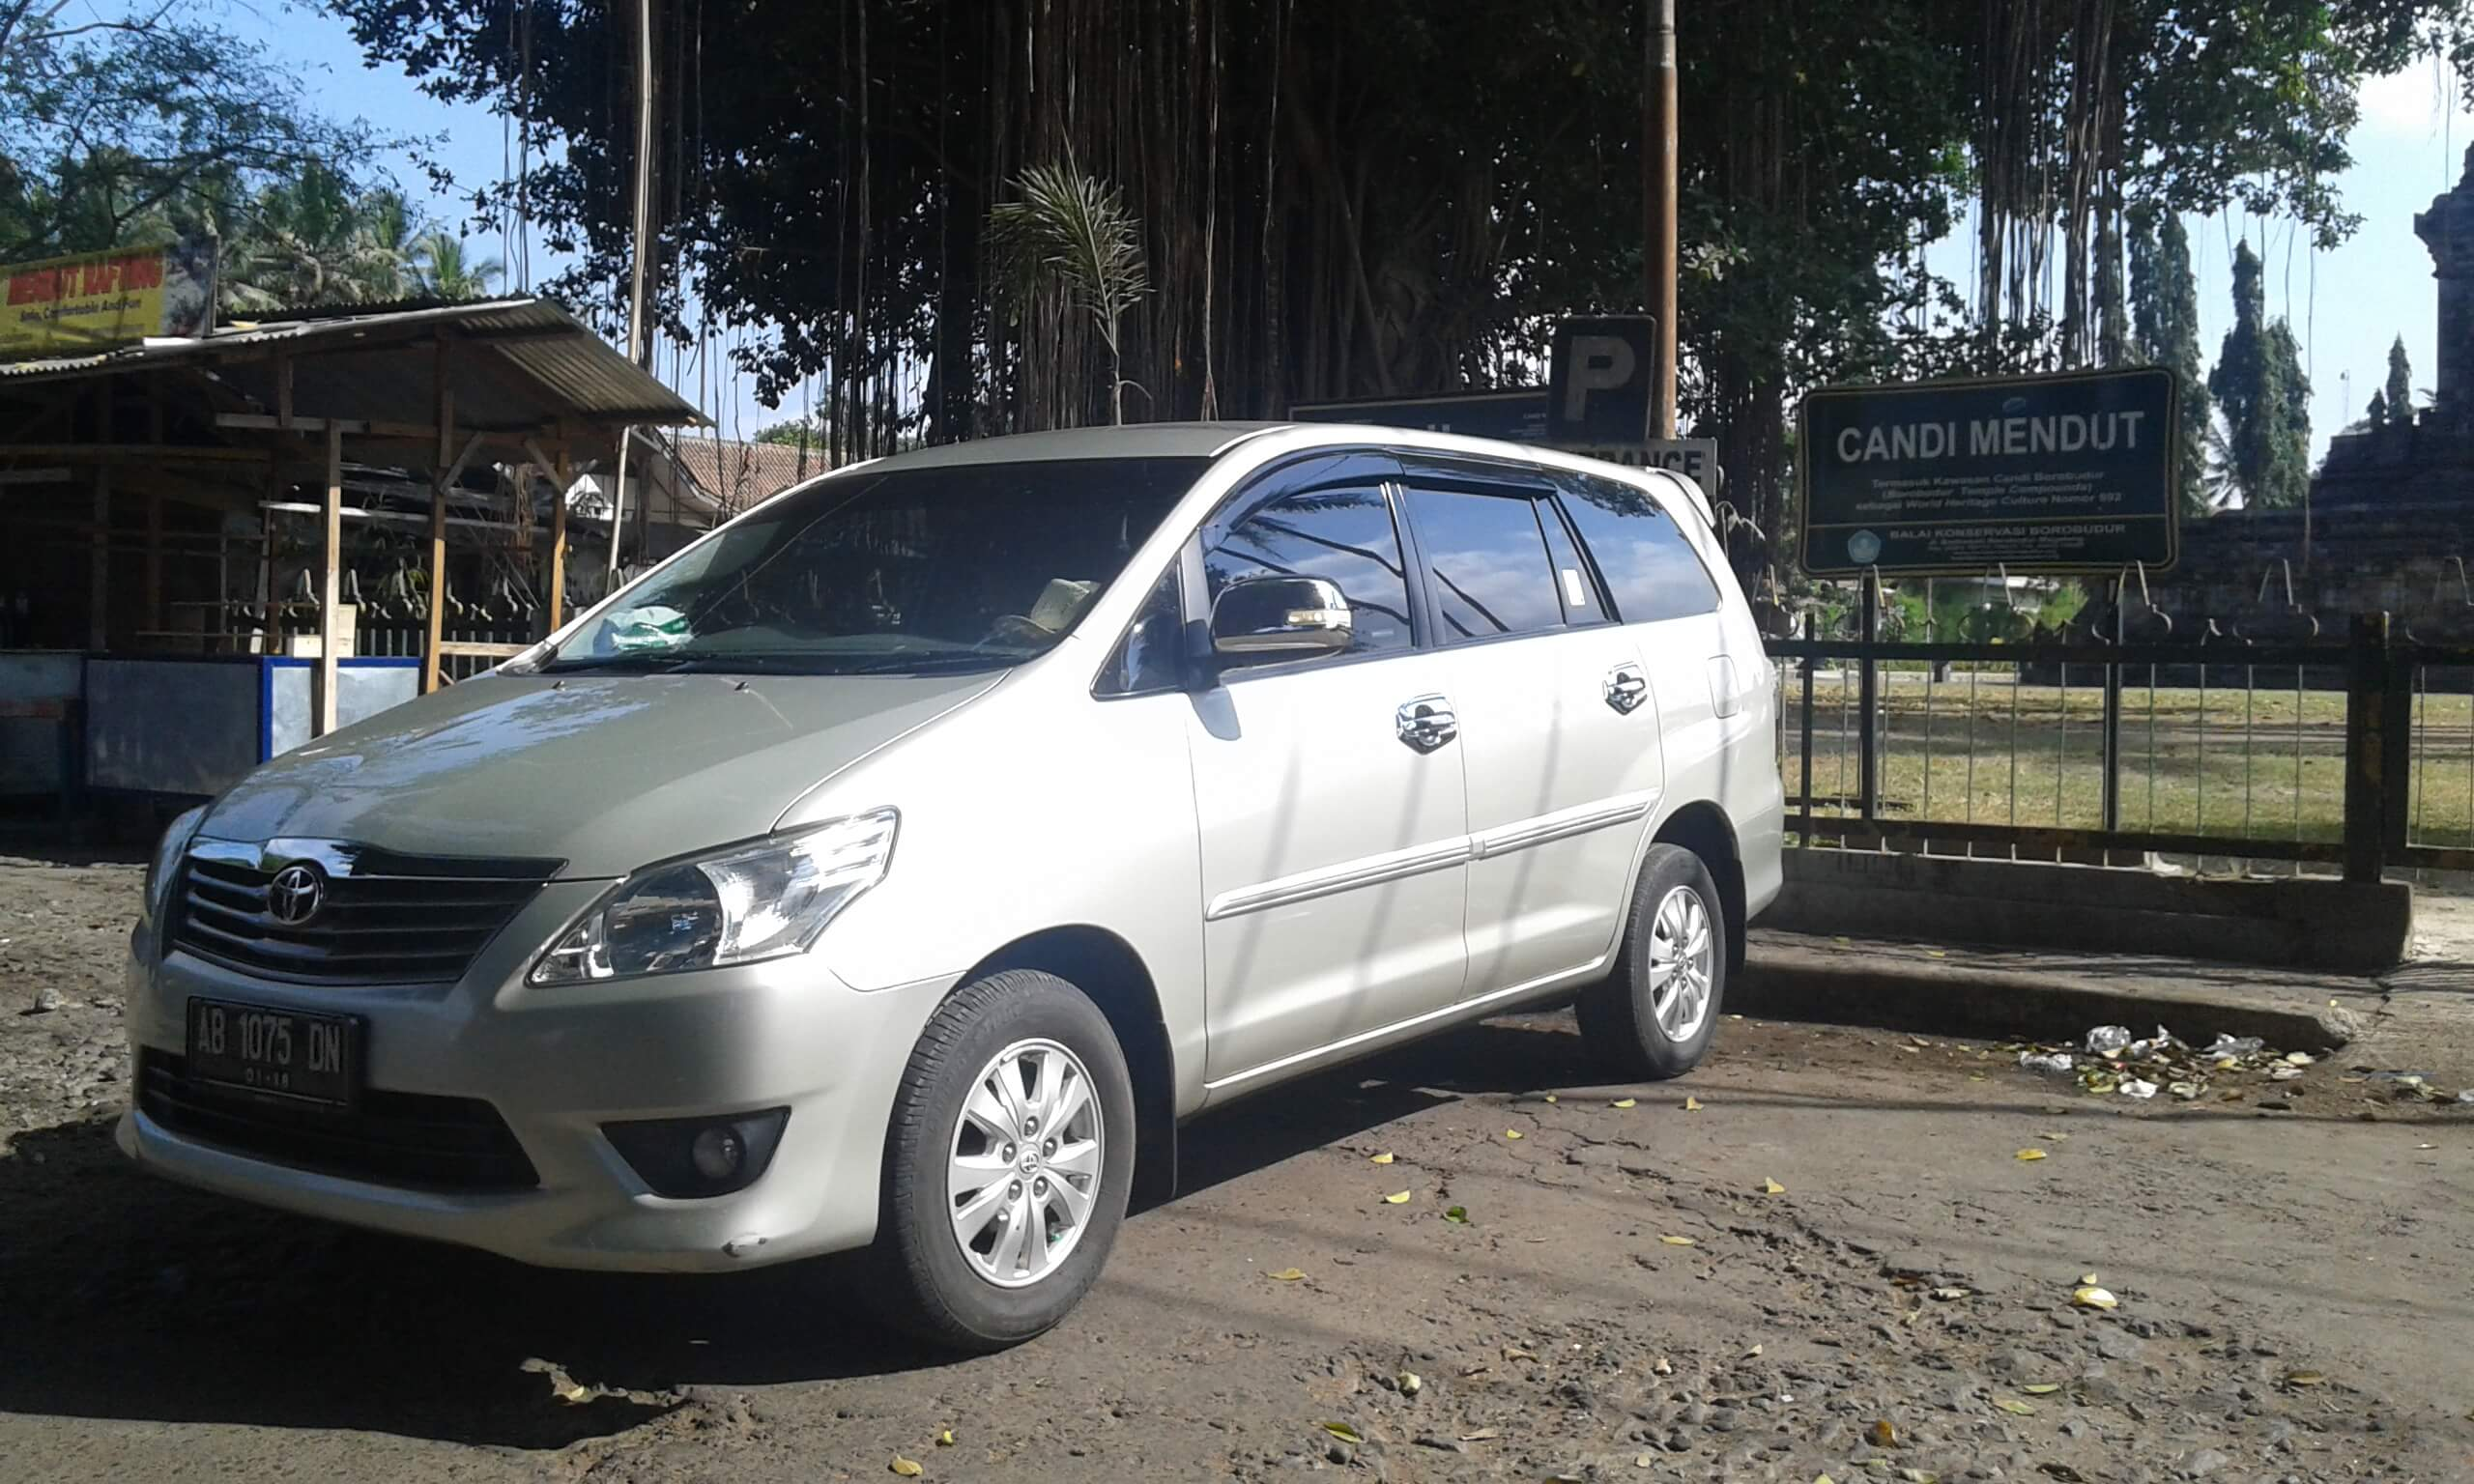 Yogya Tour offes car hire service to discover Jogjakarta